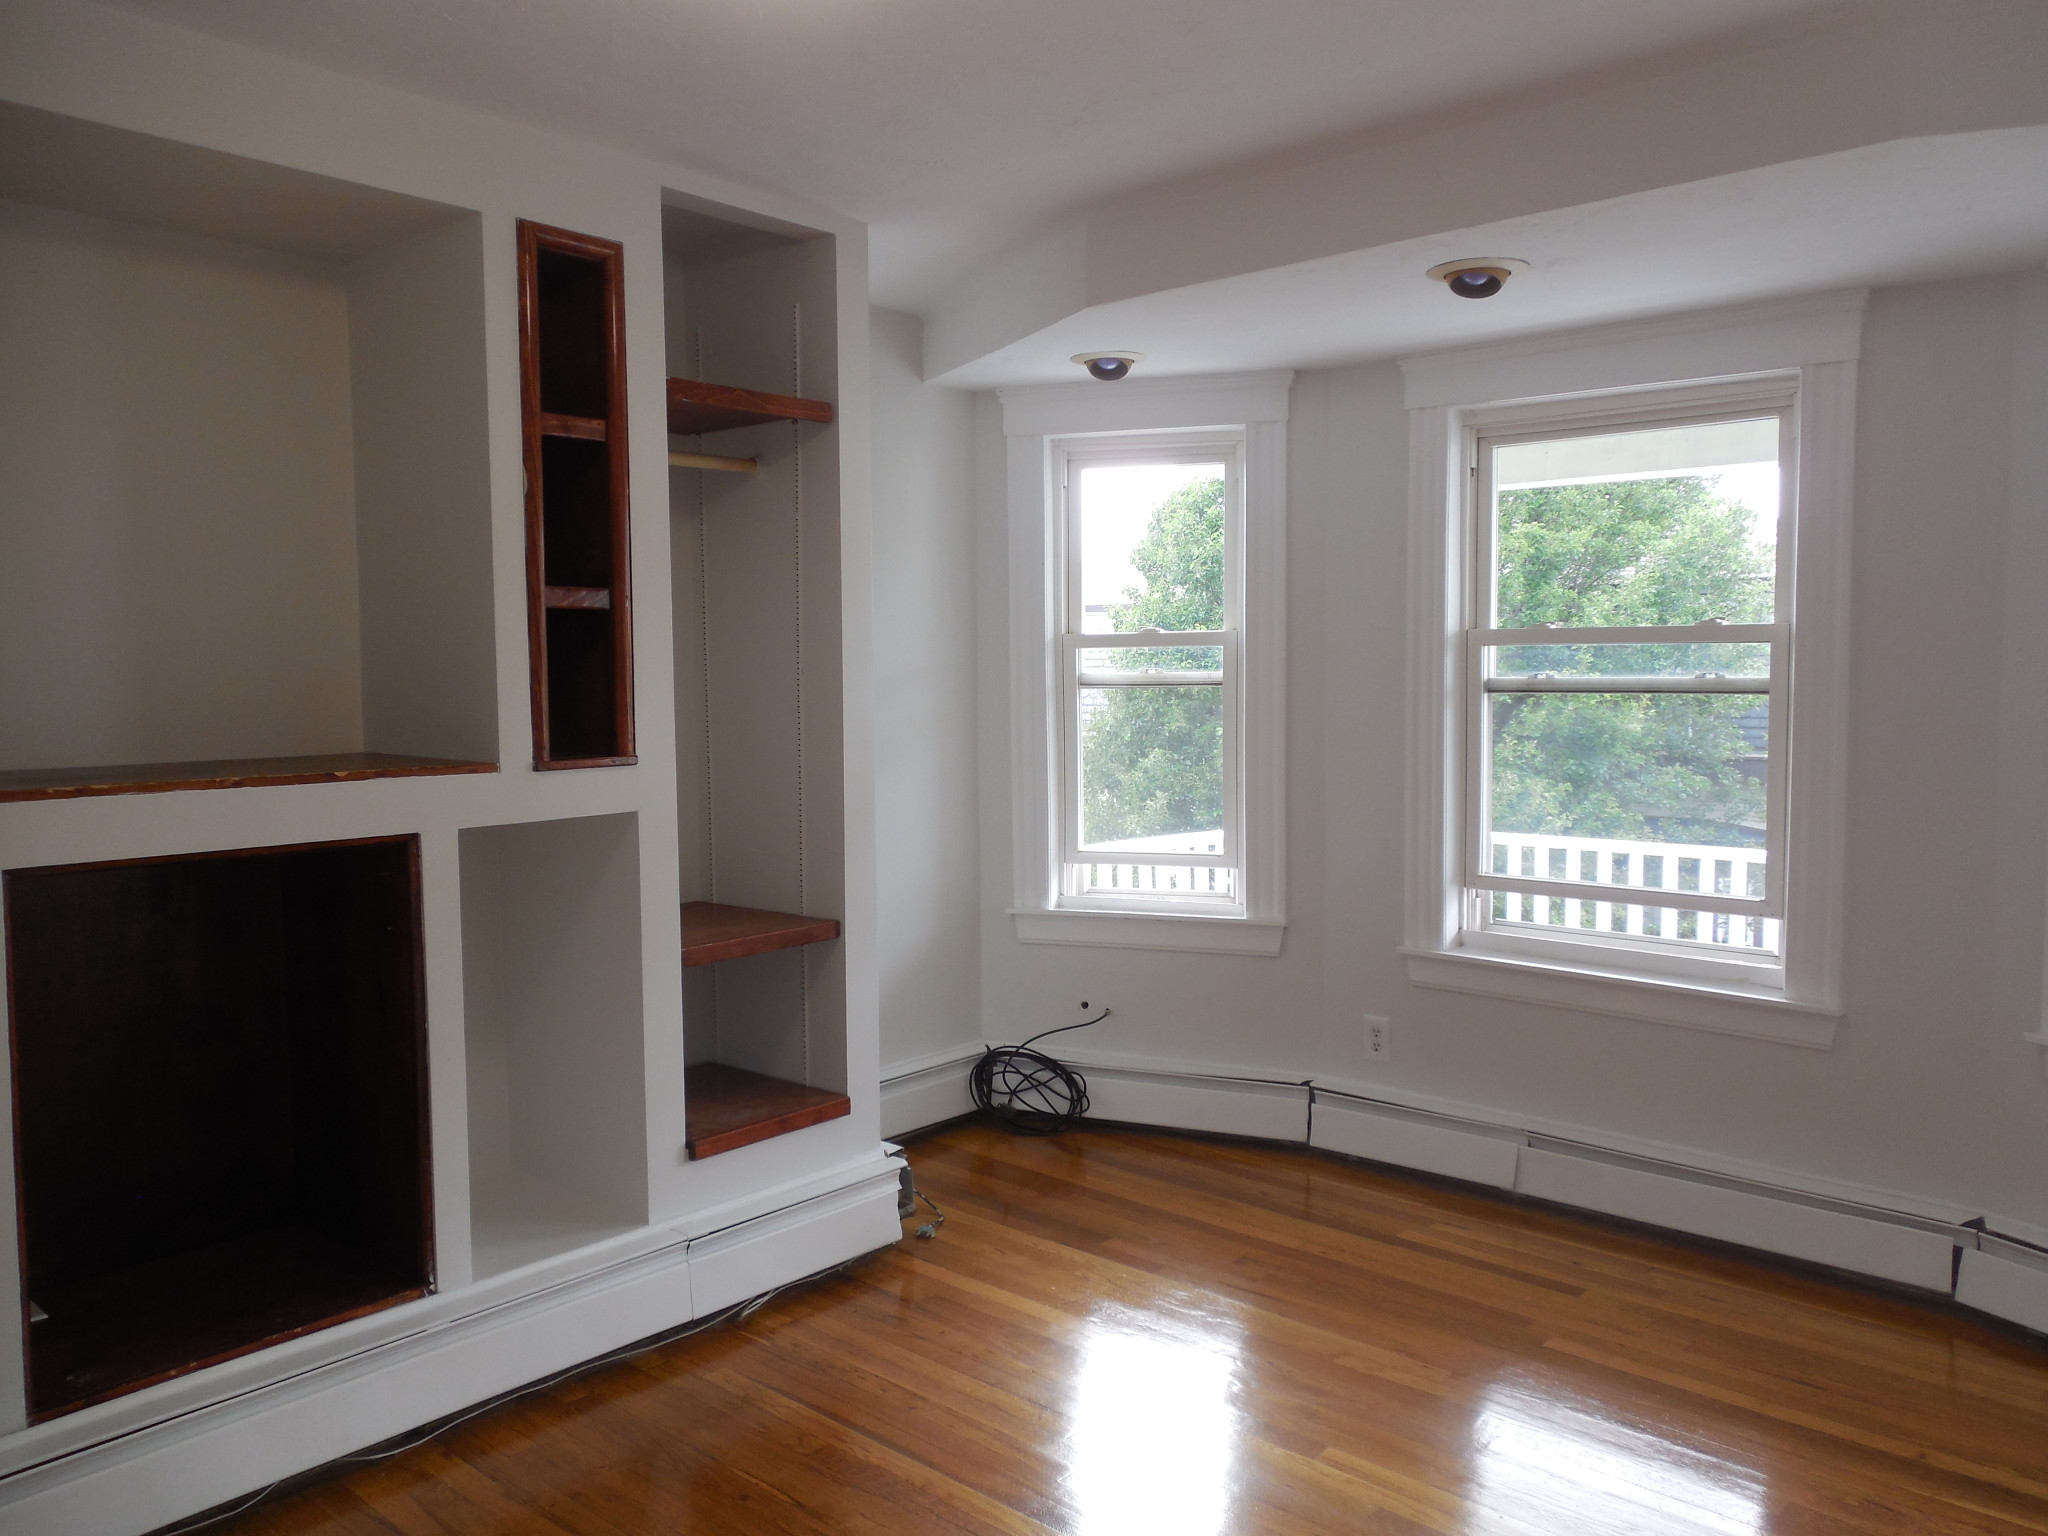 Photos of apartment on Pinckney St.,Somerville MA 02145